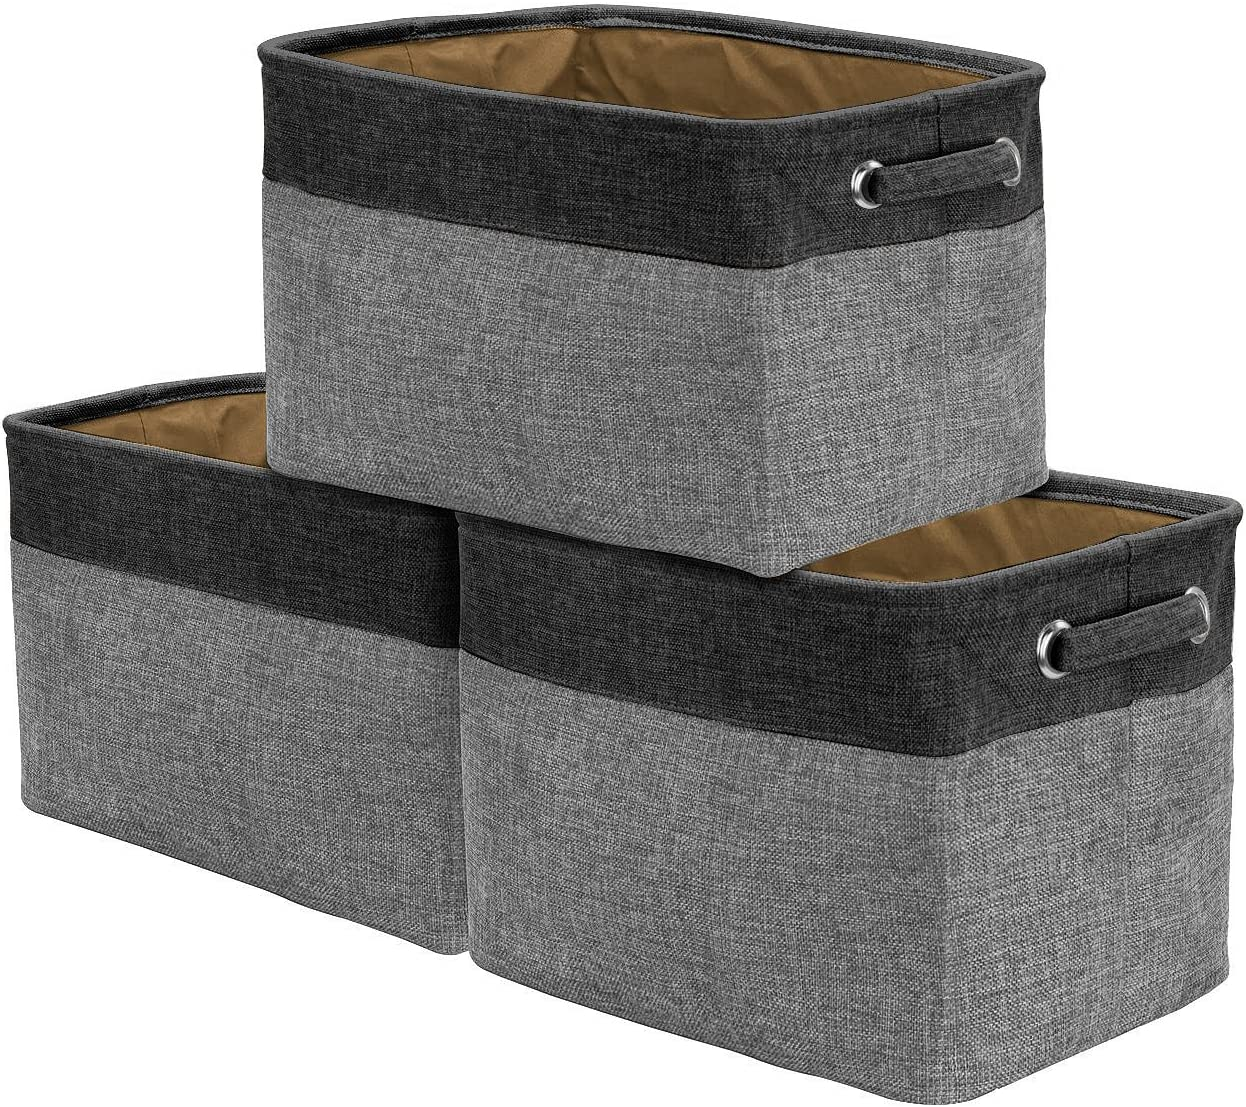 Sorbus Storage Large Basket Set 3-Pack - Los Angeles Mall 15 11 Bi H x W Clearance SALE Limited time 9 L